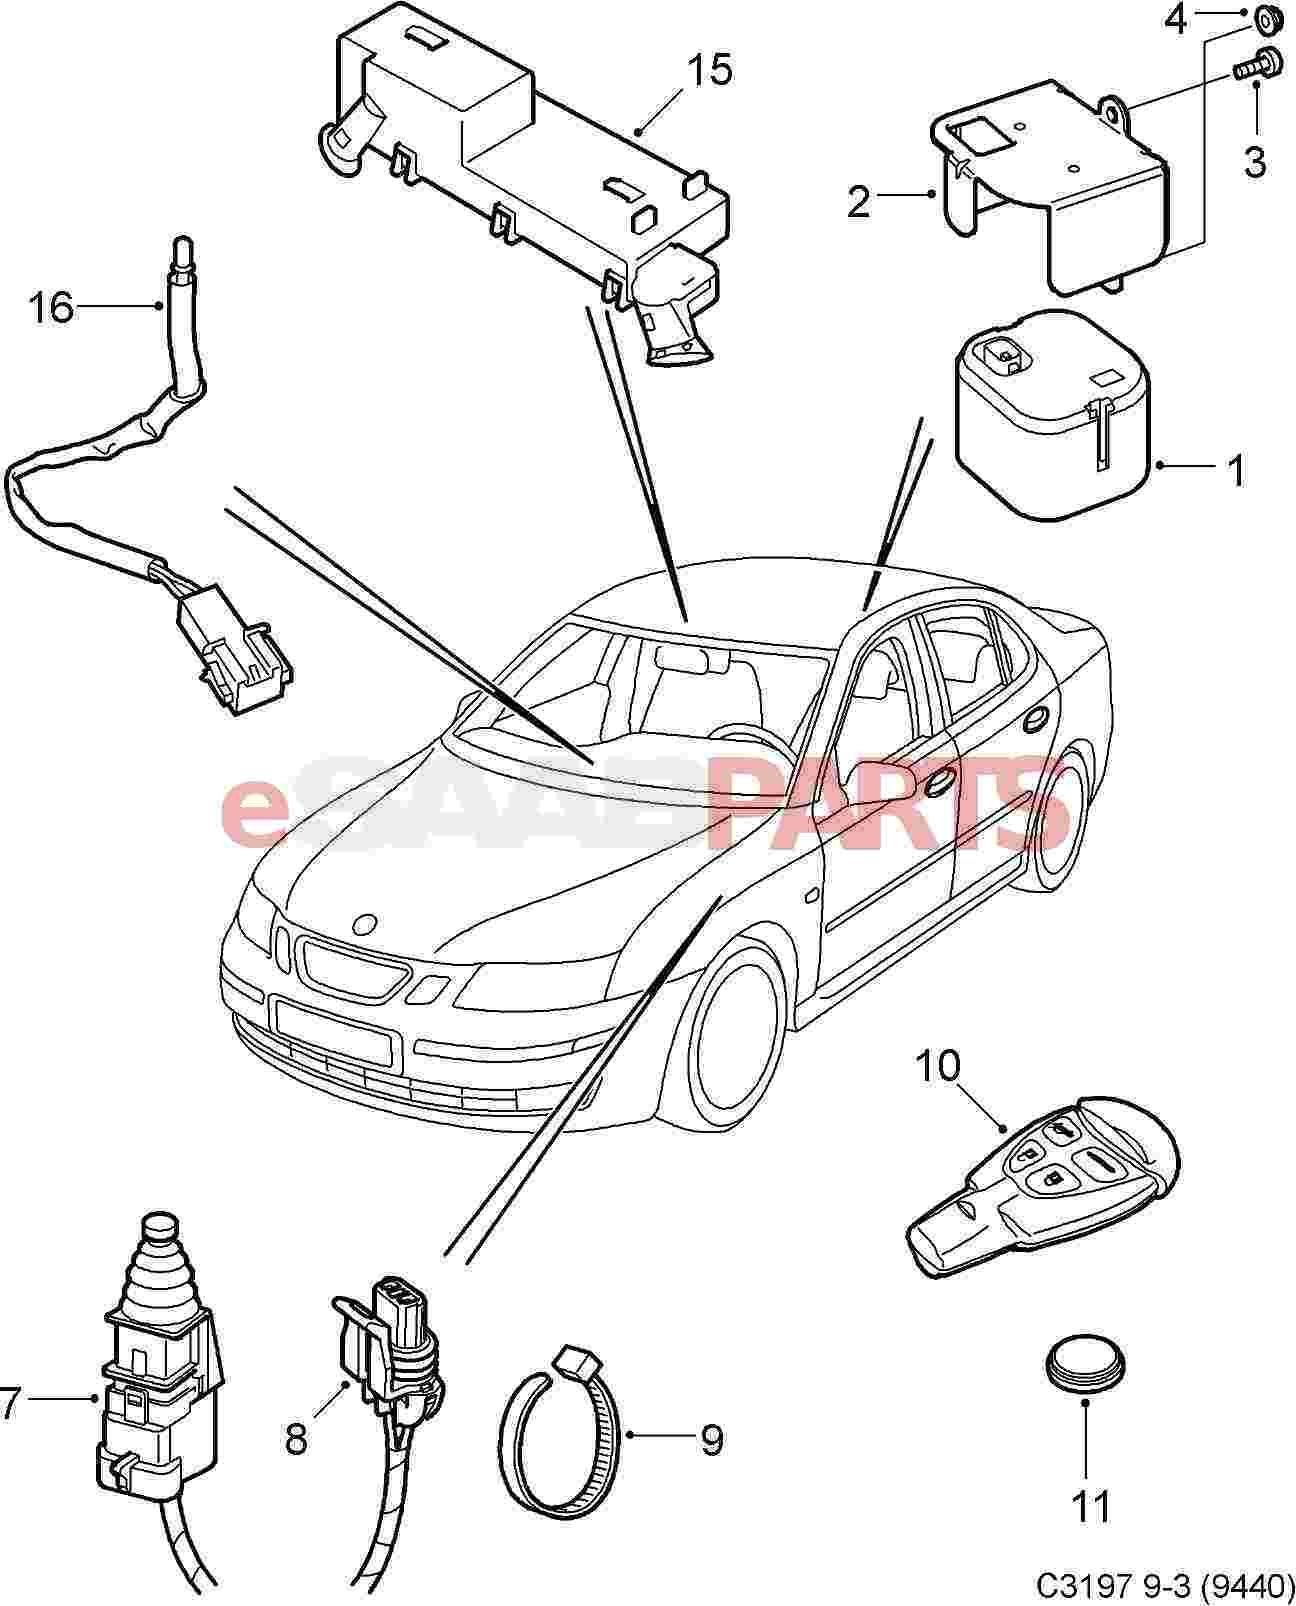 2006 Saab 9 3 Headlight Diagram Html Com